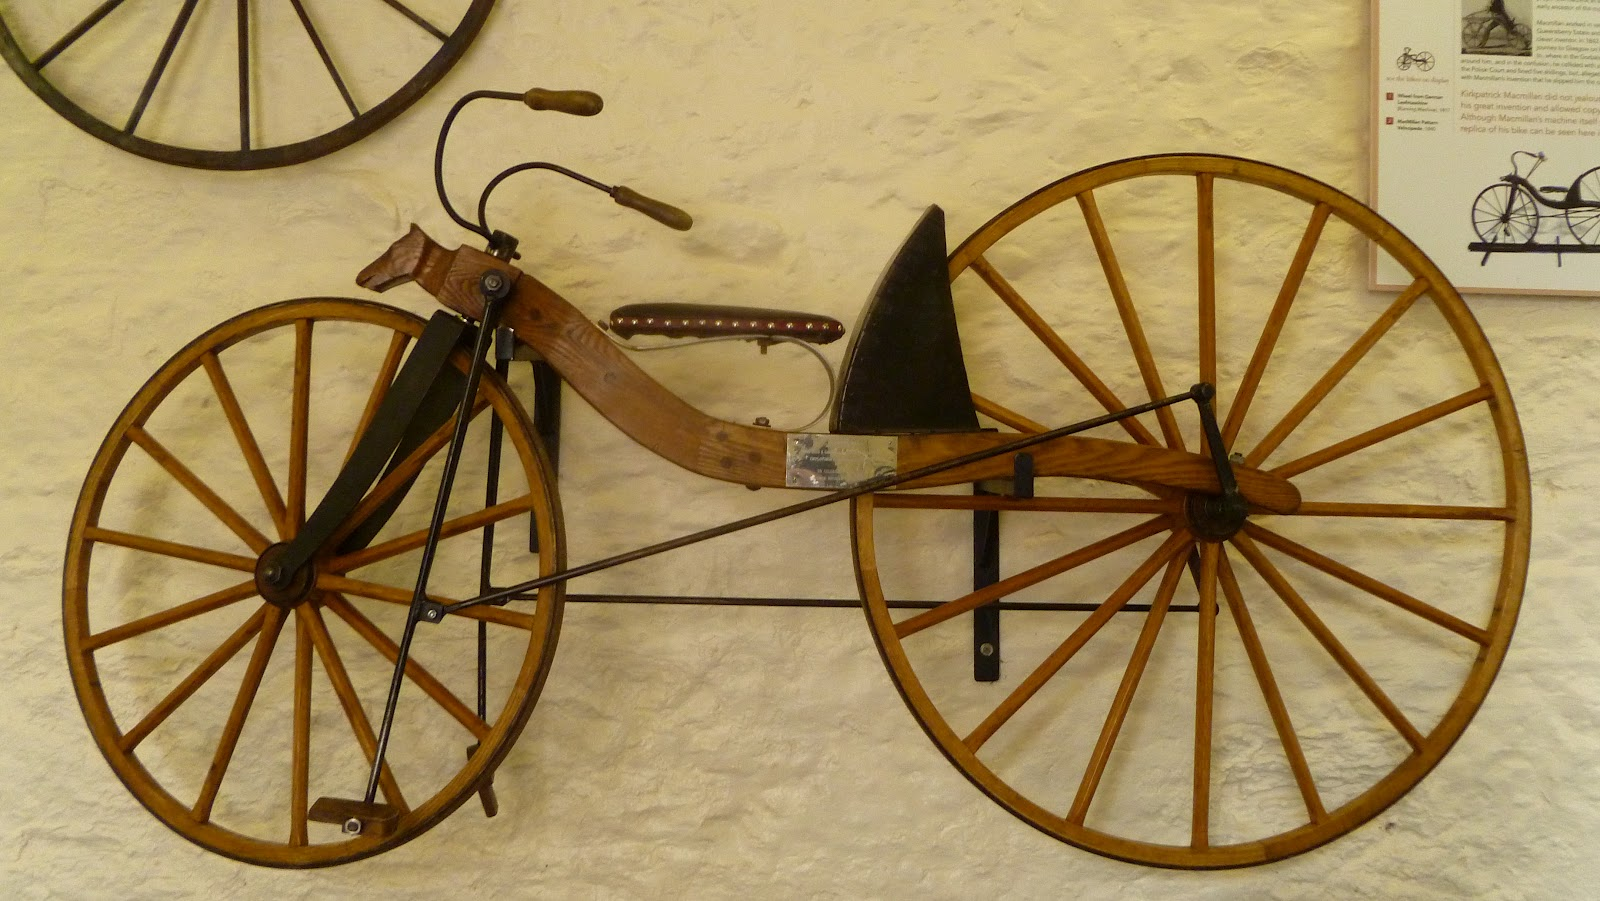 a history and origin of bicycle Early drives leonardo da vinci is credited with developing the idea of the chain and cog in the 15th century however, it took nearly 400 years for the idea to become a practical aspect of bicycle design.